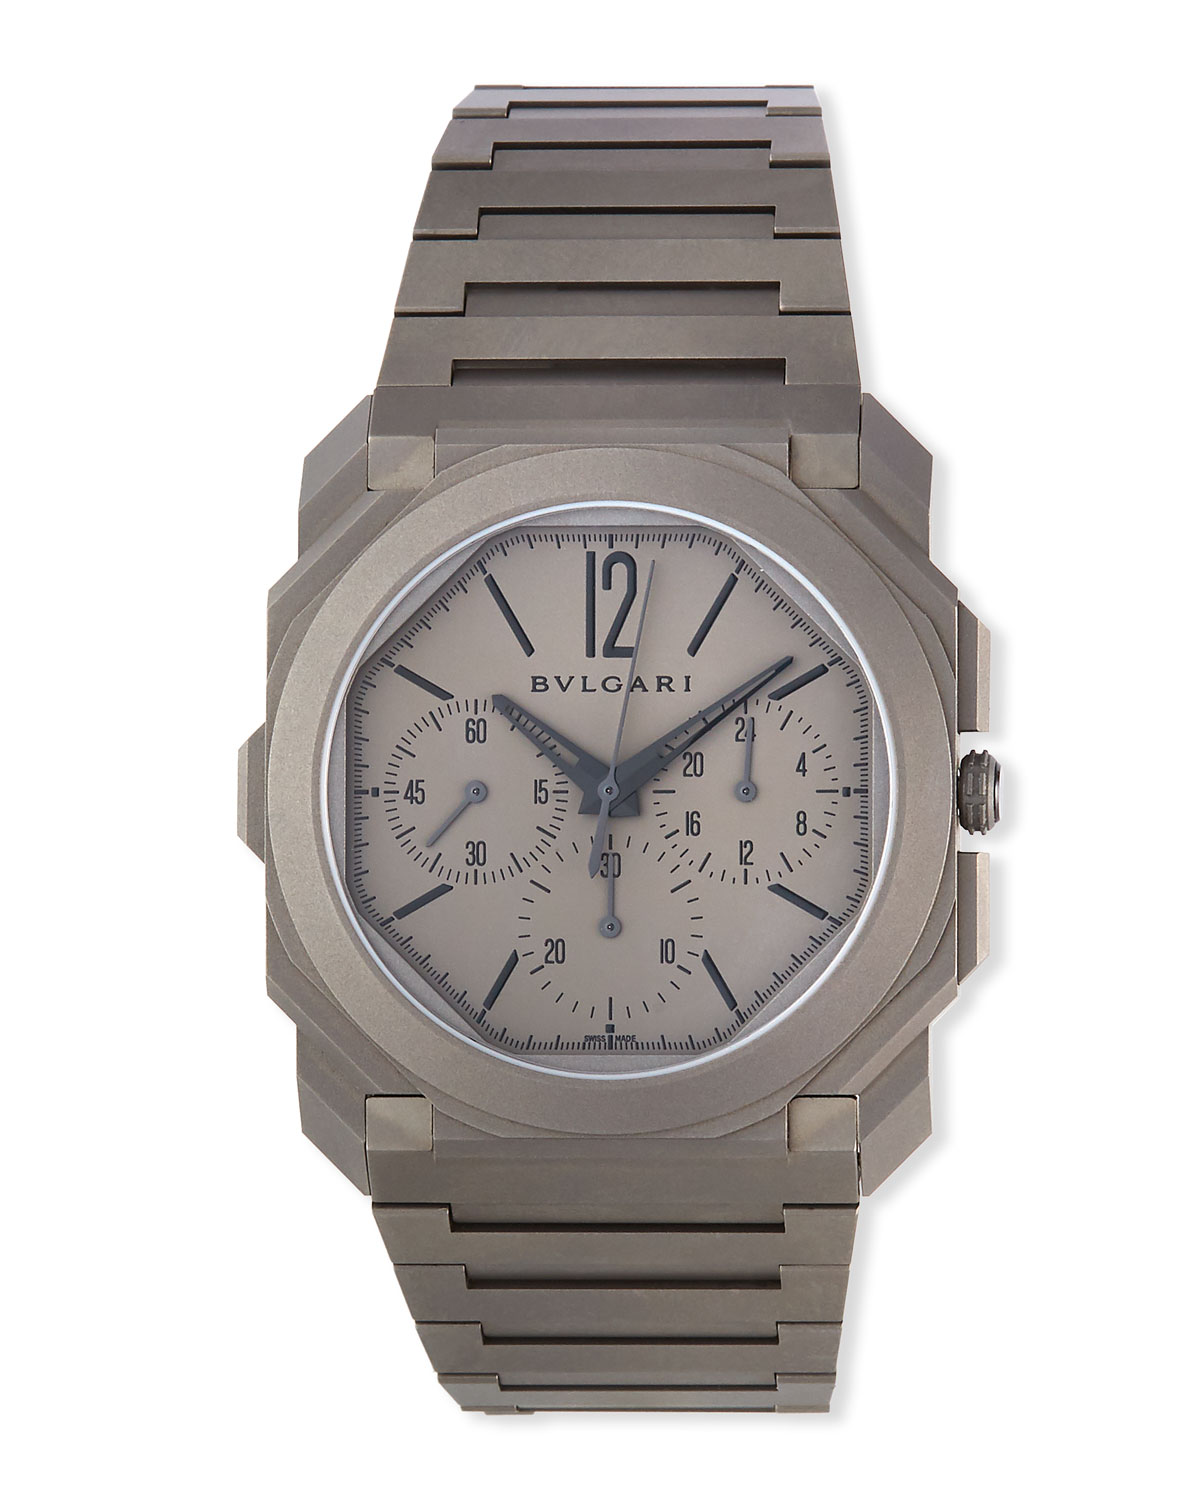 BVLGARI Men's 42mm Octo Finissimo Chronograph Watch in Titanium